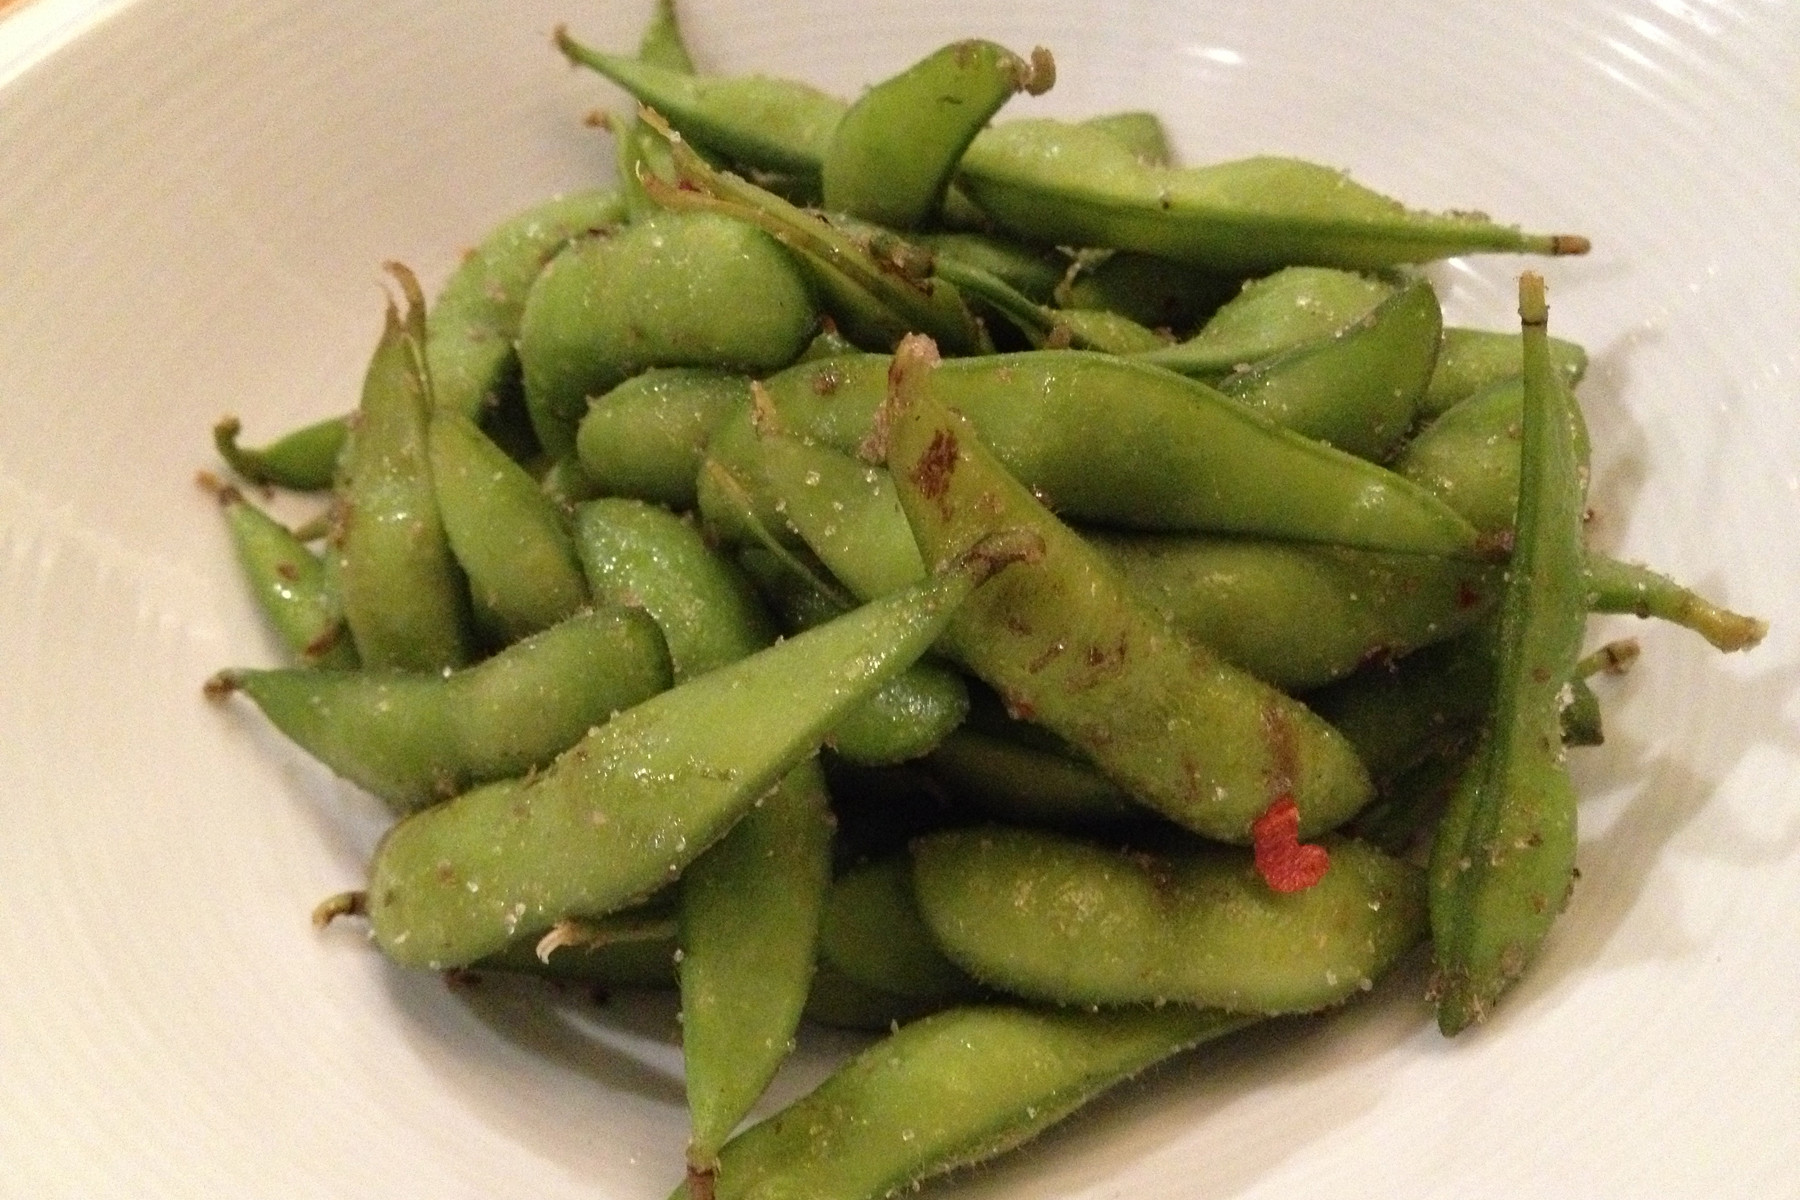 The edamame tossed with hickory-smoked sea salt is an oddly addictive appetizer.